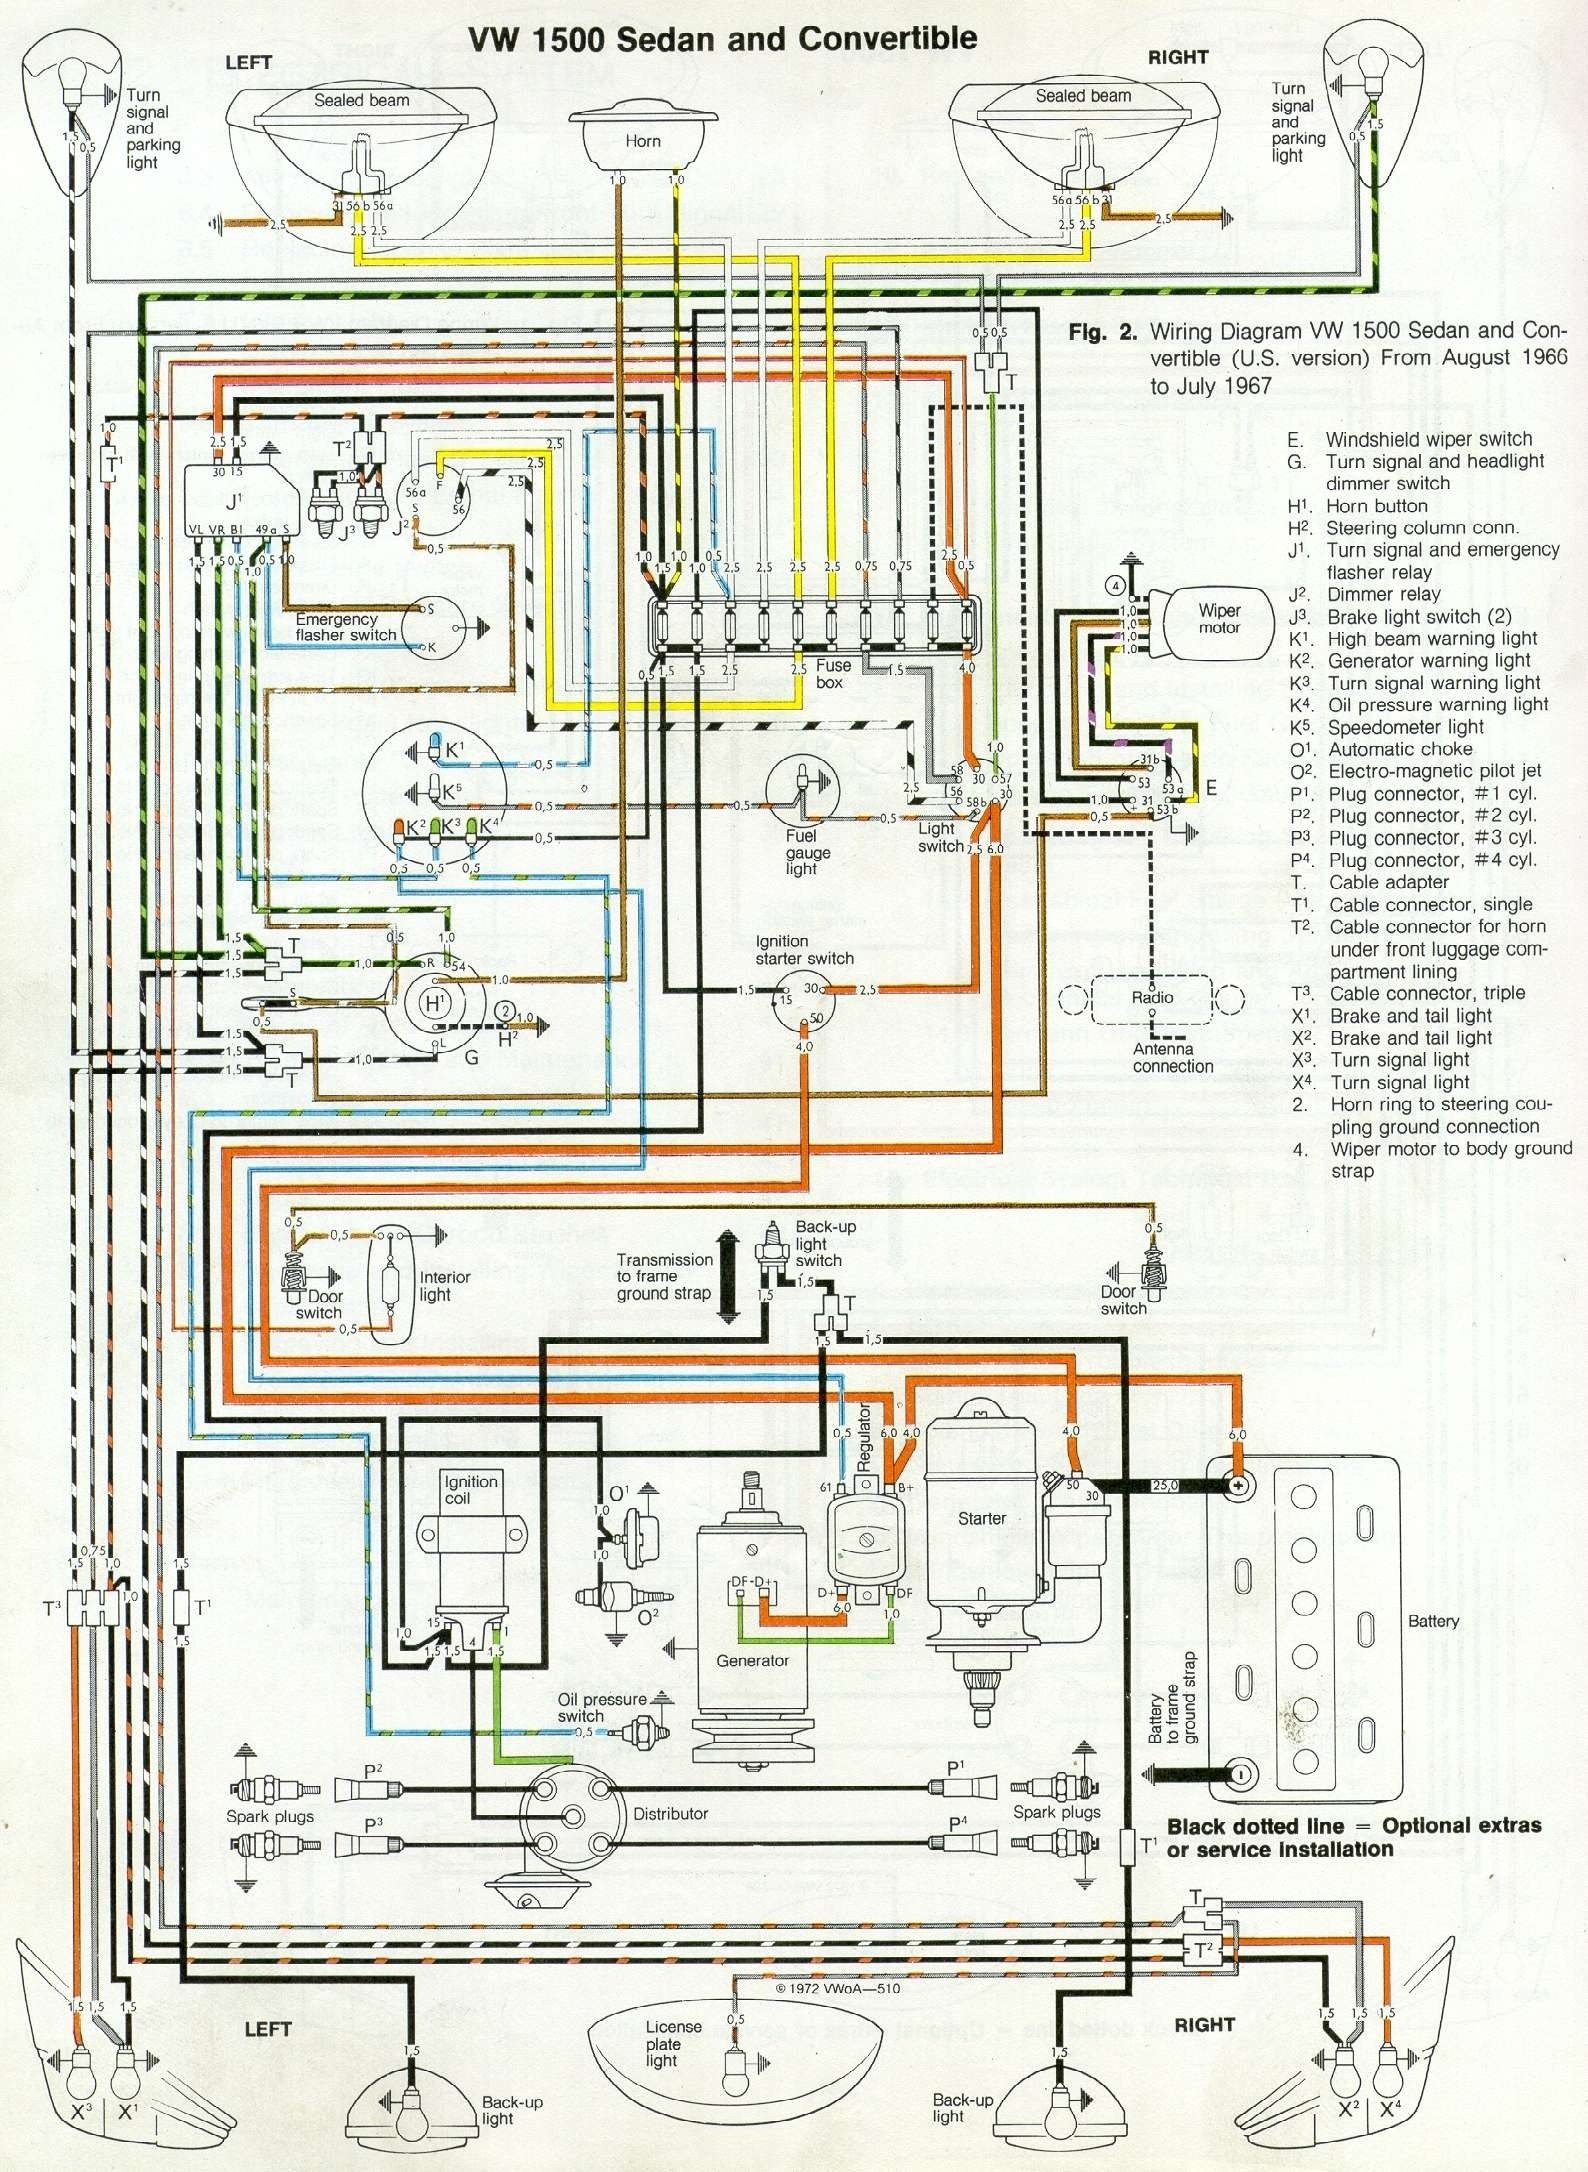 66 and 67 vw beetle wiring diagram vw beetles and beetle 66 and 67 vw beetle wiring diagram